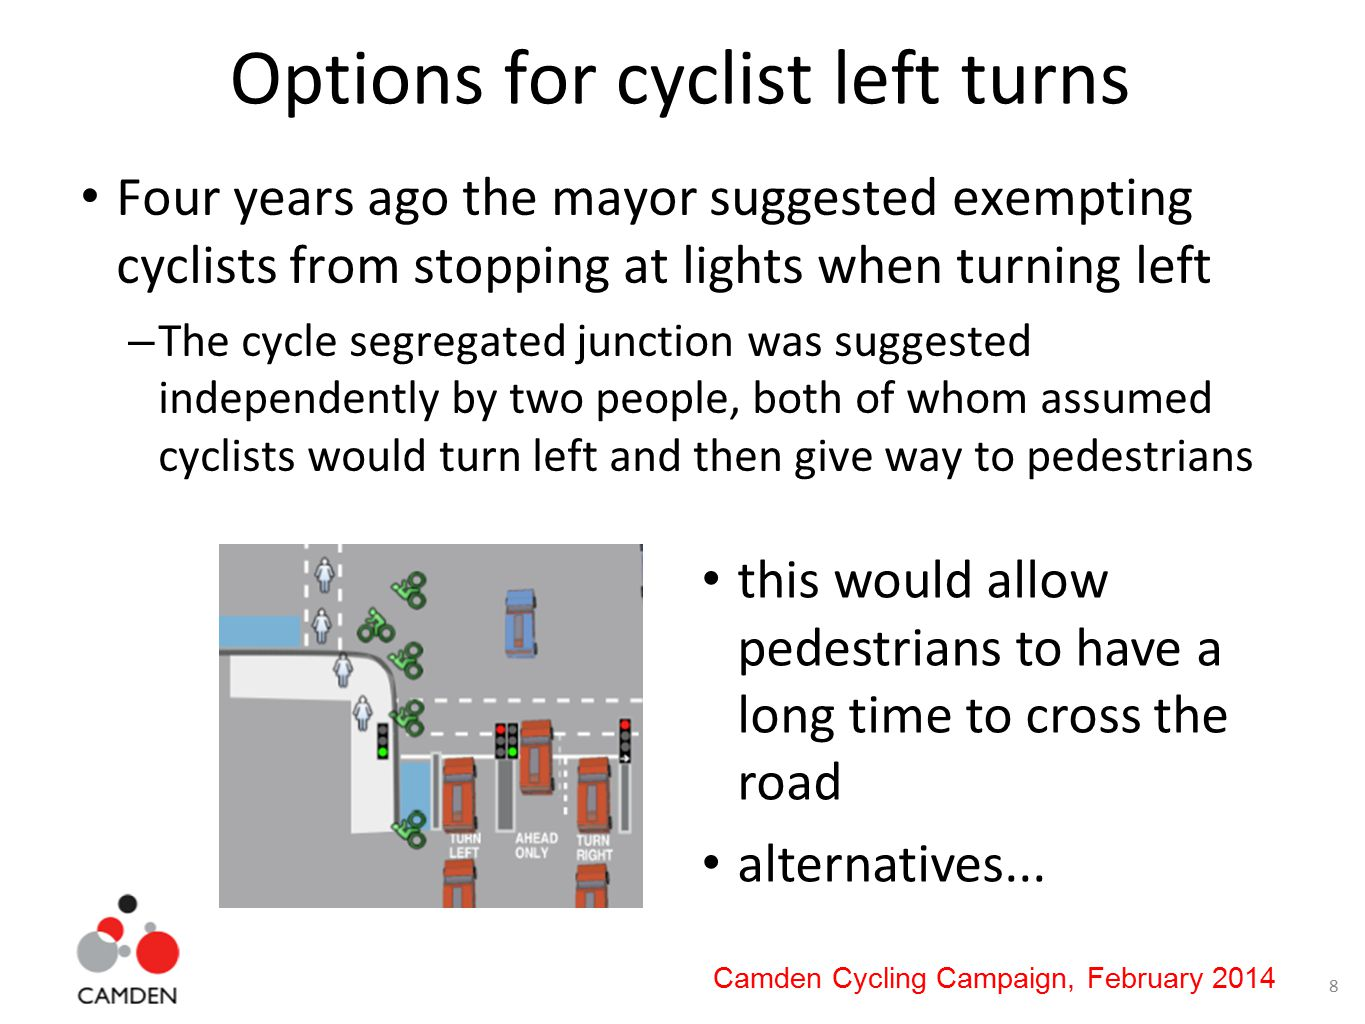 8 Camden Cycling Campaign, February 2014 Options for cyclist left turns Four years ago the mayor suggested exempting cyclists from stopping at lights when turning left – The cycle segregated junction was suggested independently by two people, both of whom assumed cyclists would turn left and then give way to pedestrians this would allow pedestrians to have a long time to cross the road alternatives...